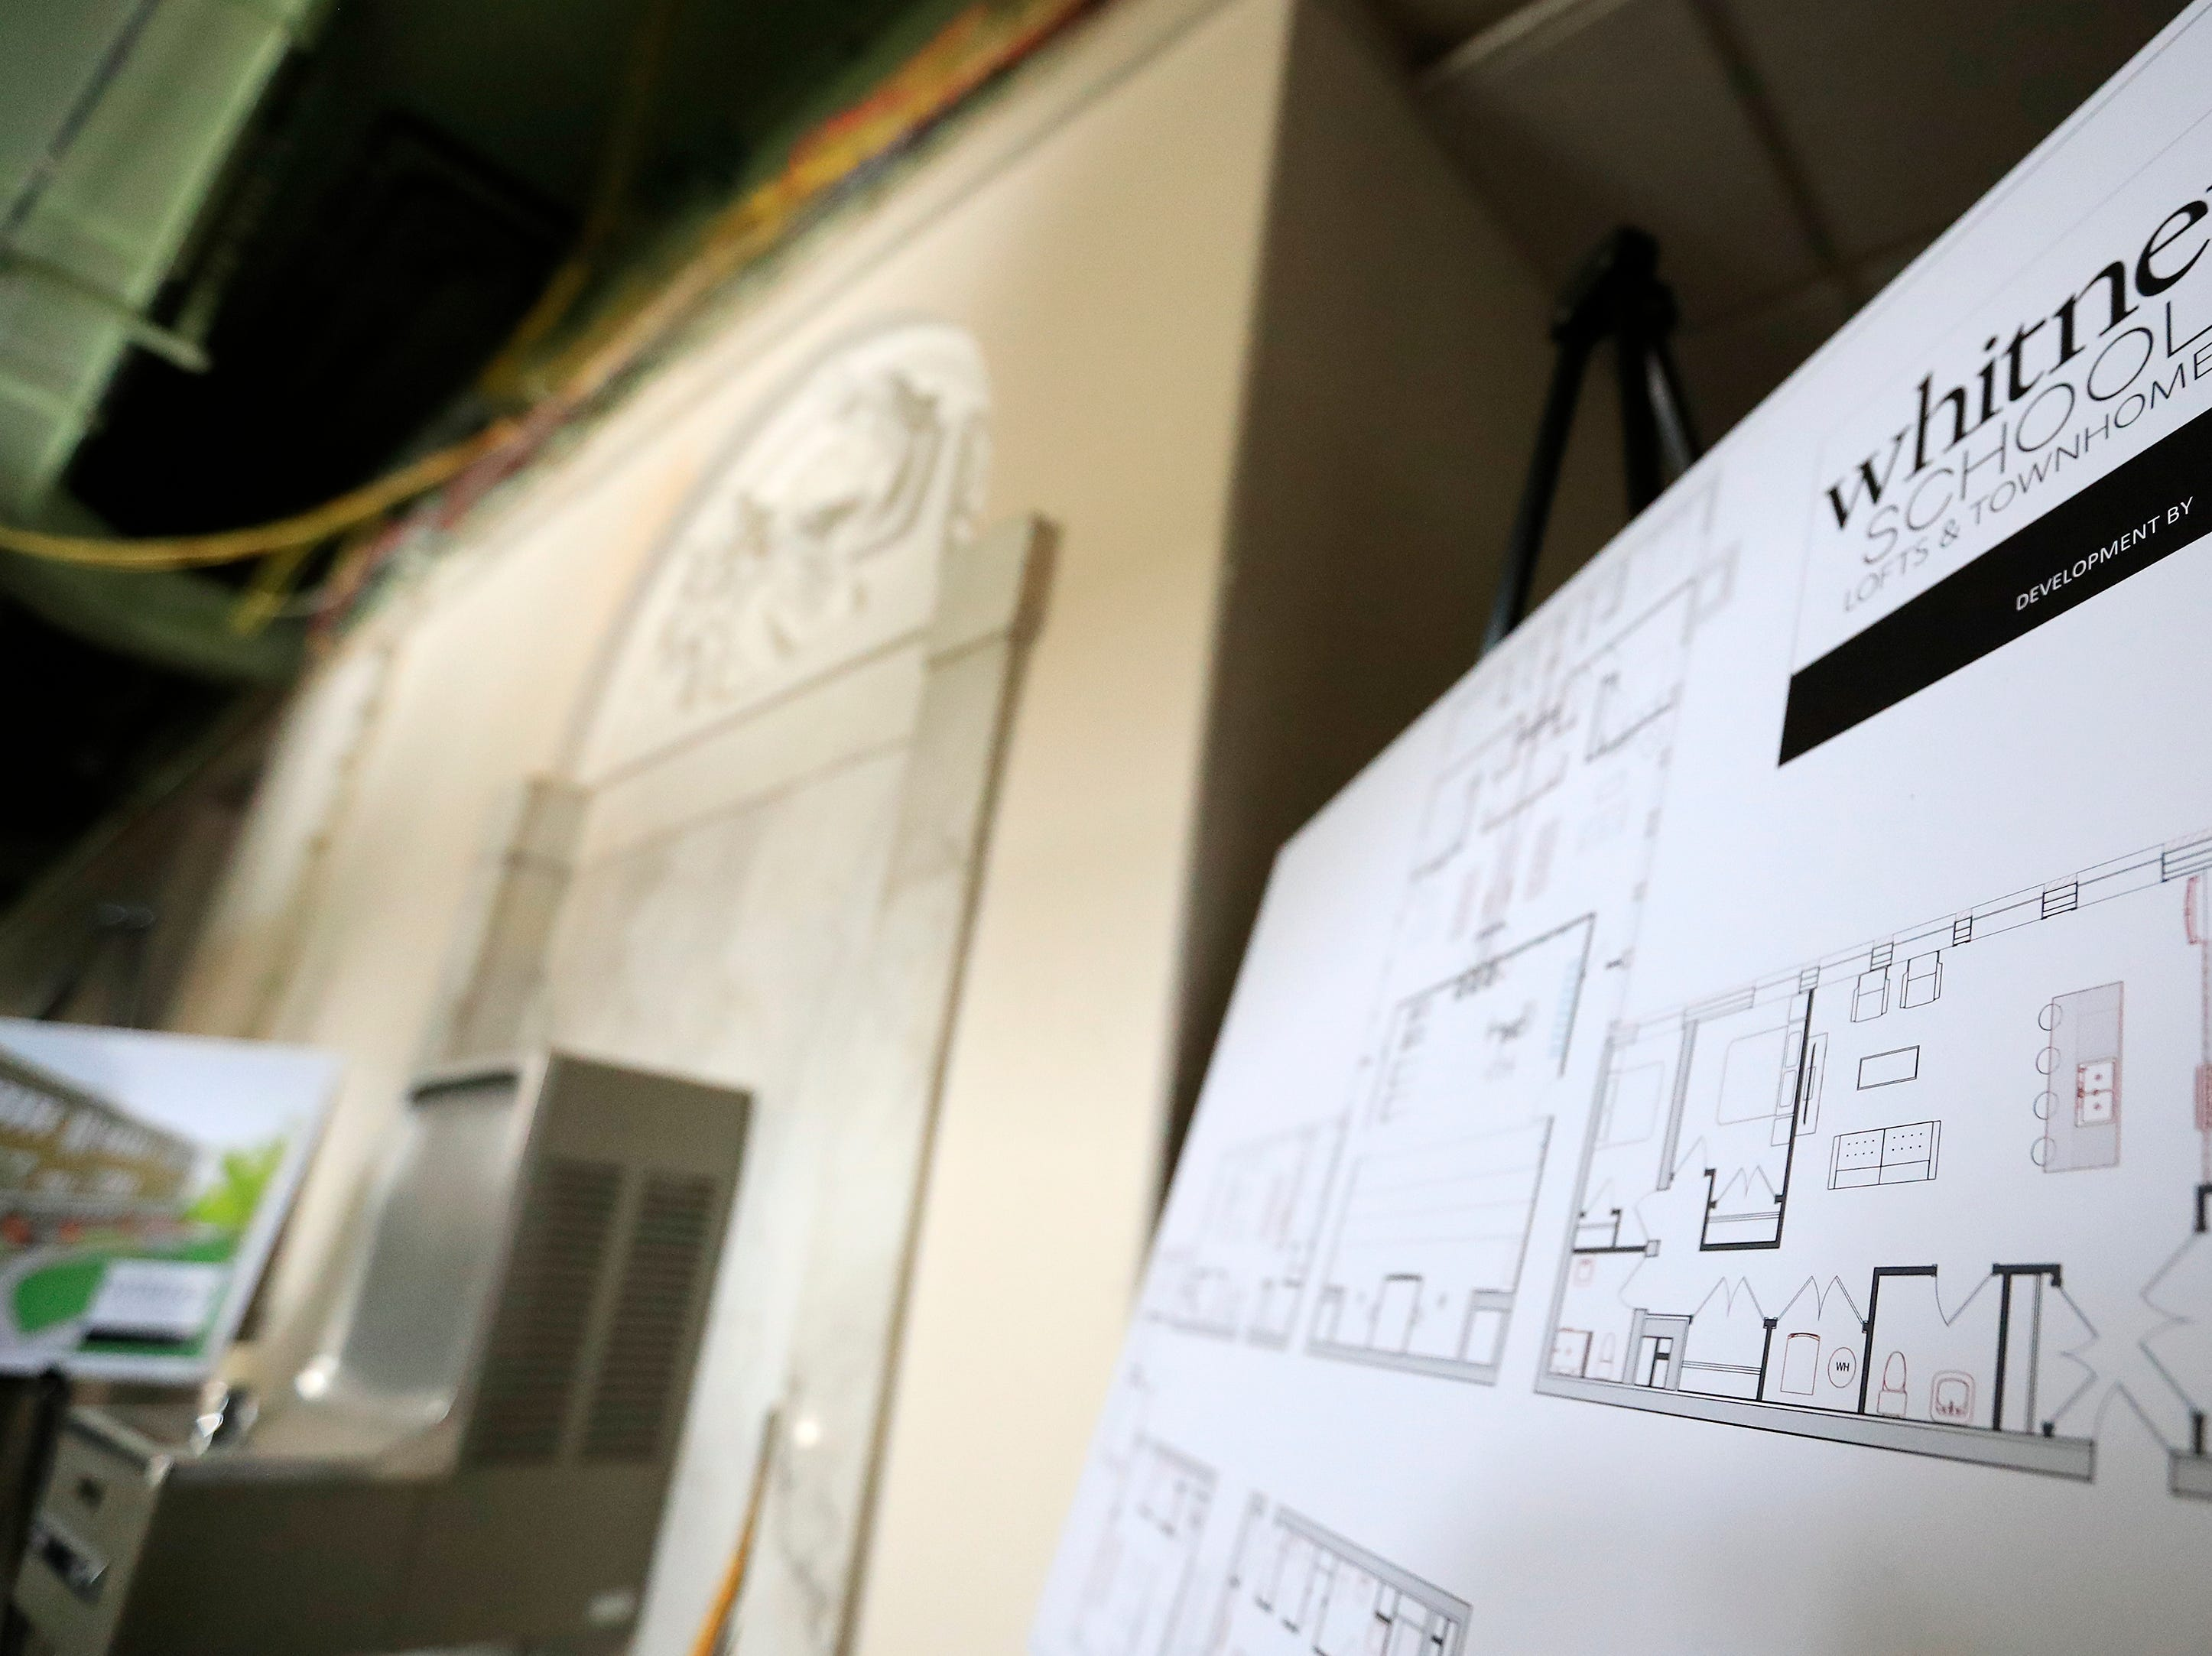 Floor plans for planned apartments in the former Whitney School building are shown on Tuesday, February 26, 2019 in Green Bay, Wis.